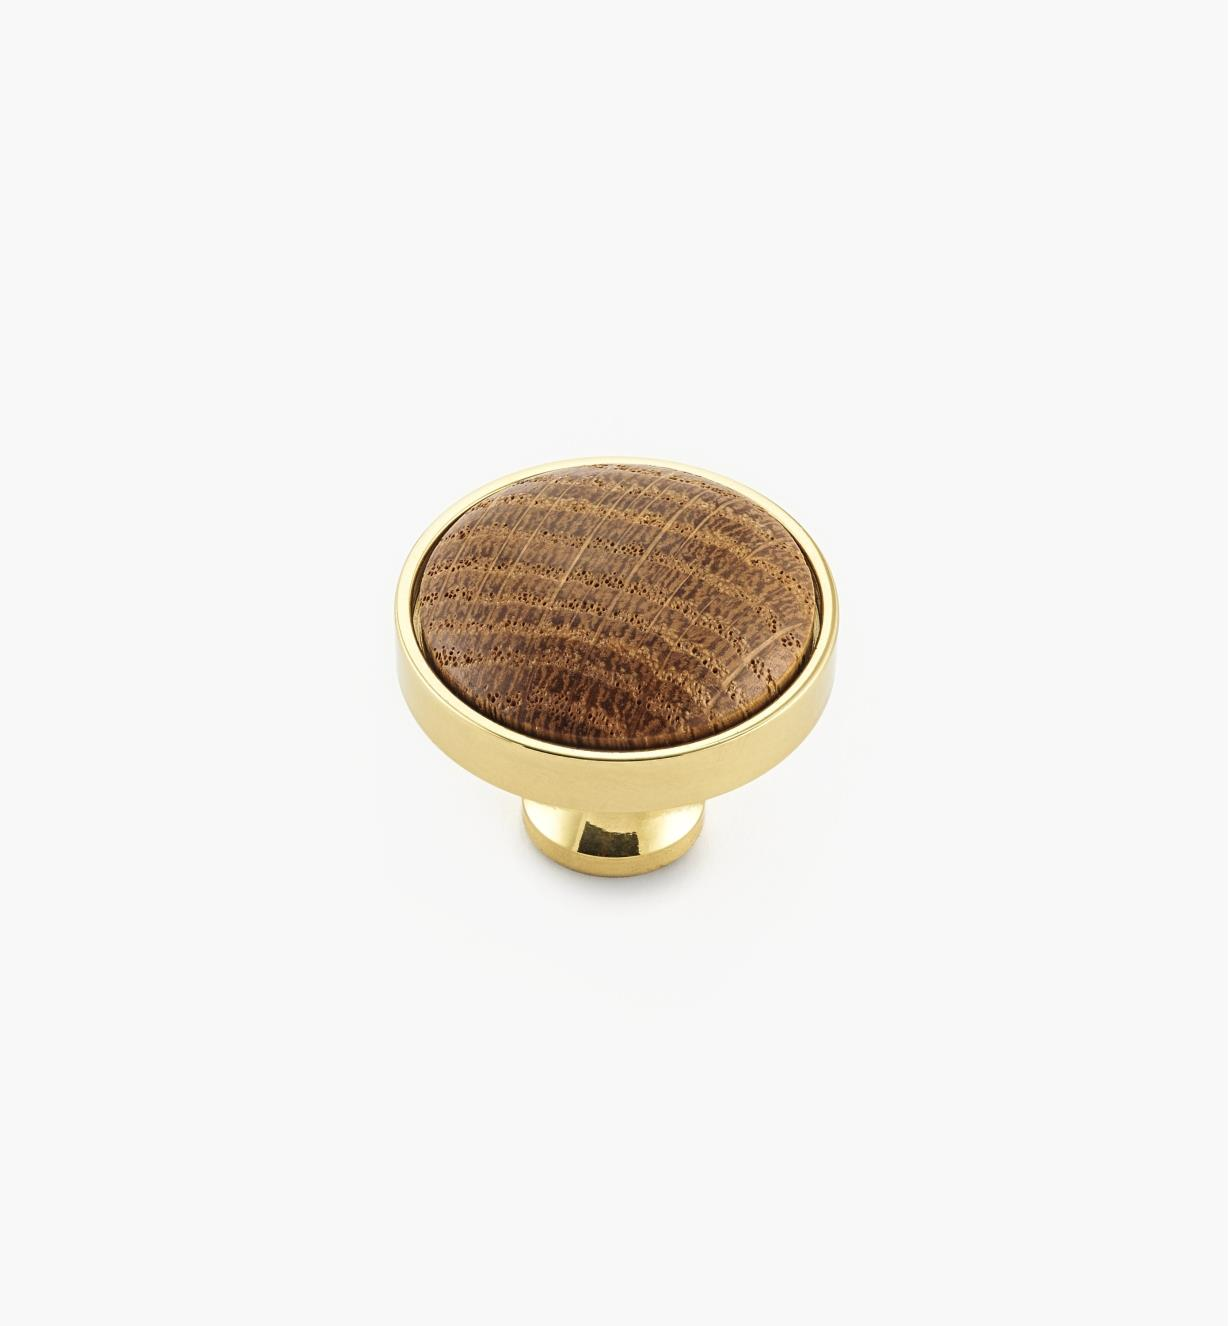 00W7635 - Polished Brass/Oak Knob